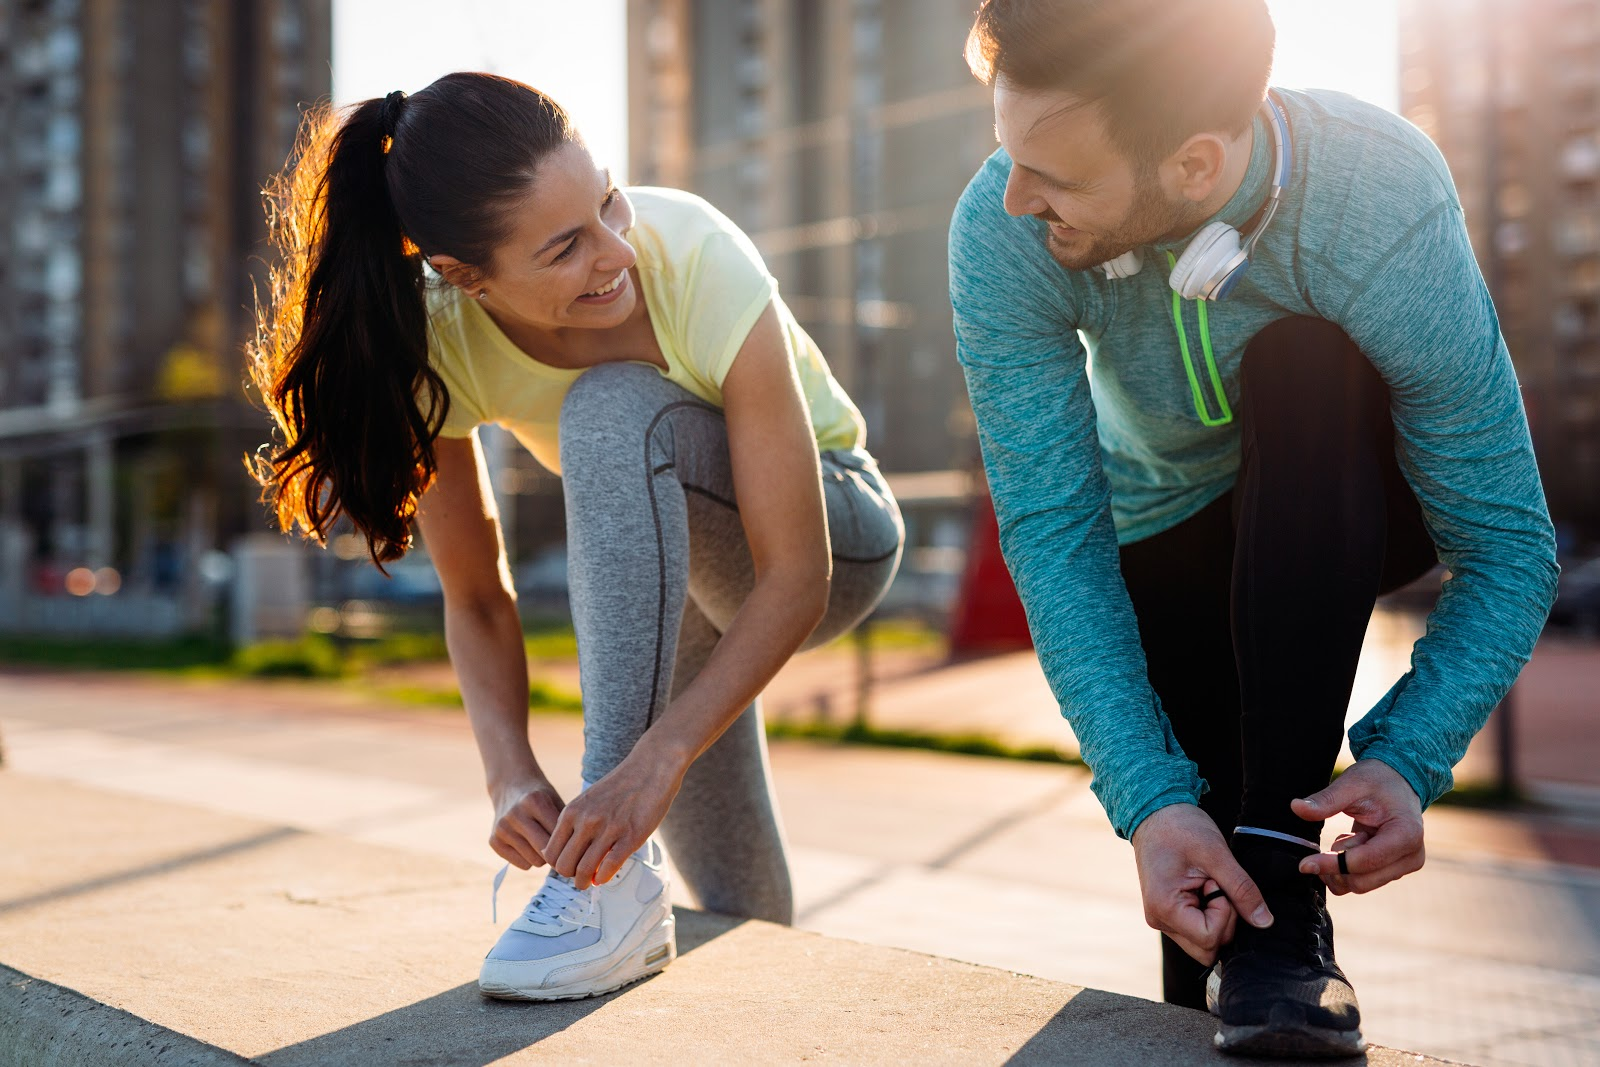 a man and a woman smiling getting ready to exercise